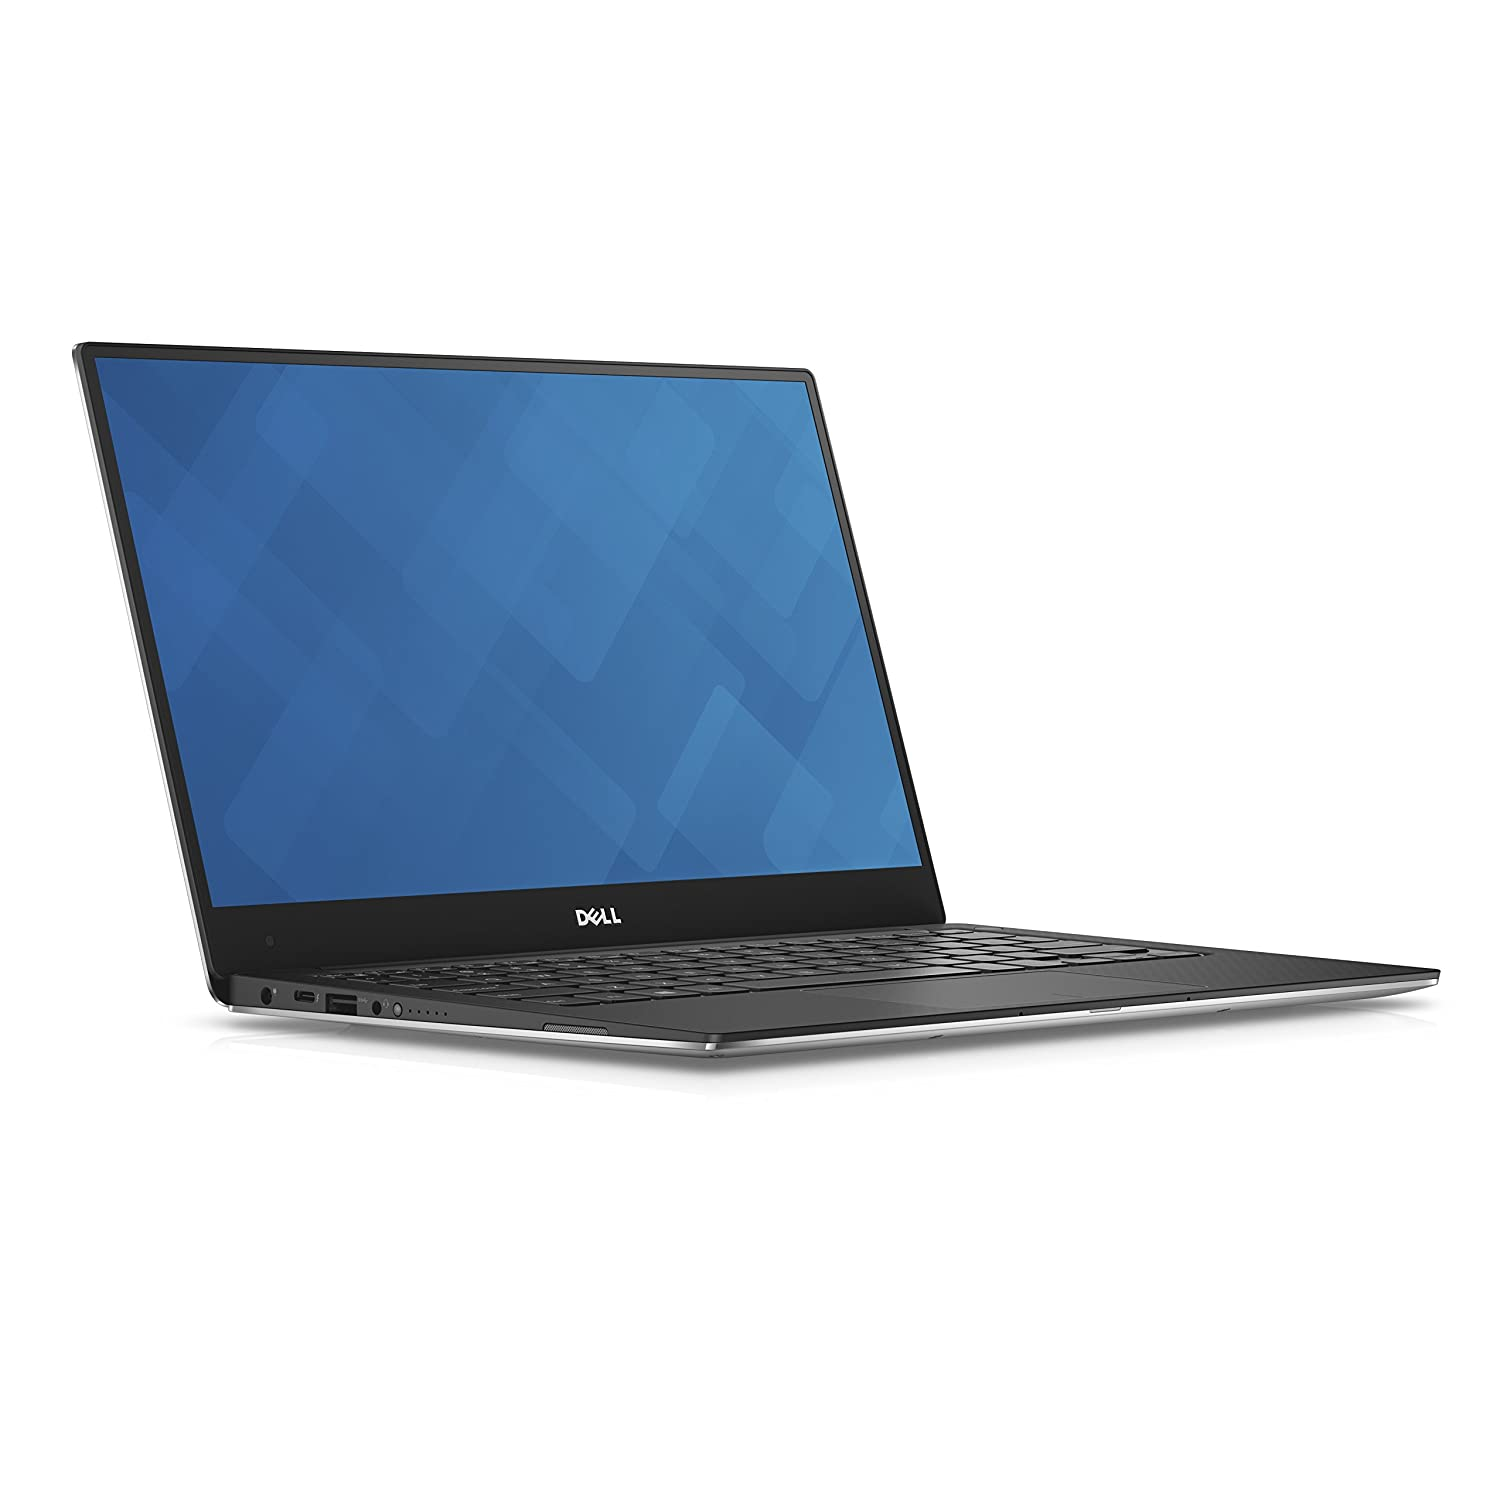 Amazon.com: DELL PRECISION M5510 4K UHD TOUCHSCREEN I7-6820HQ 32GB 512 SSD + 512GB NVME SSD NVIDIA Quadro M1000M Windows 10 Pro Workstation: Computers & ...